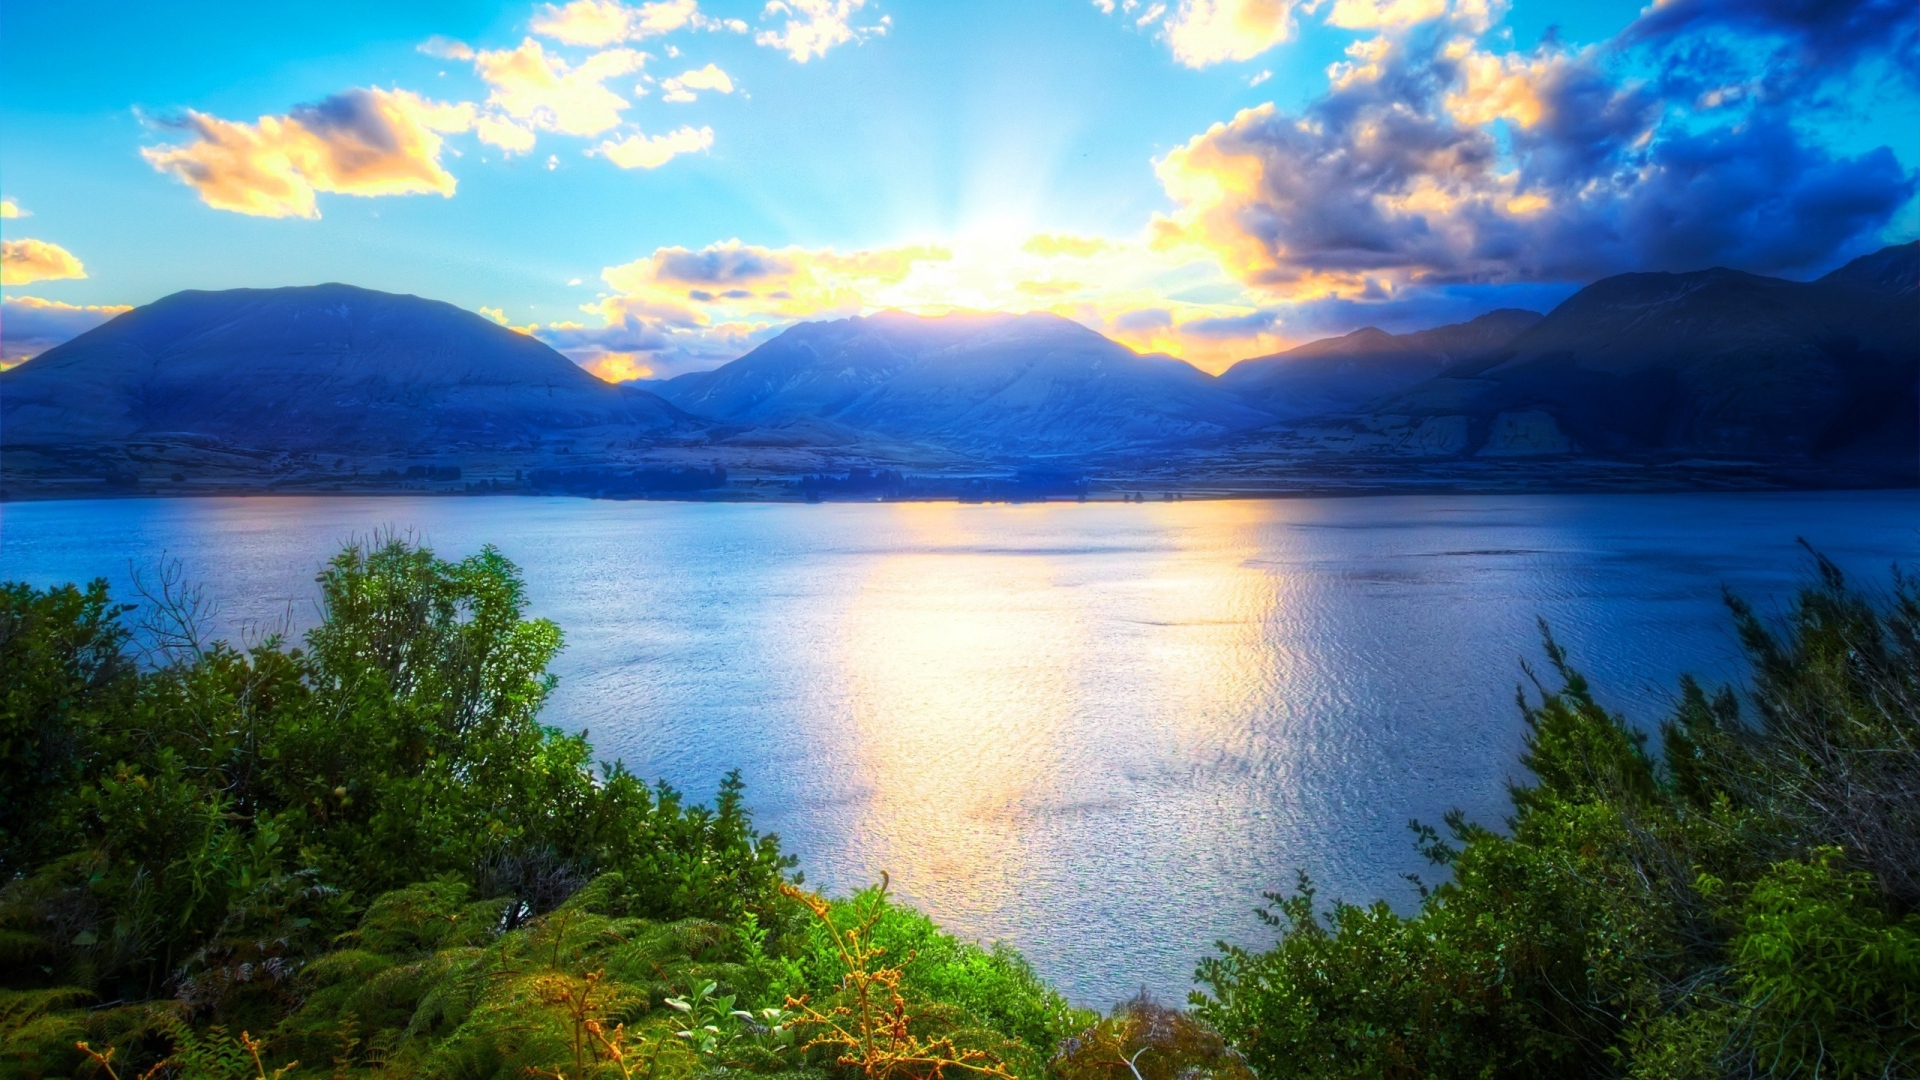 Relaxing Landscape With Water Mountains And Sunlight